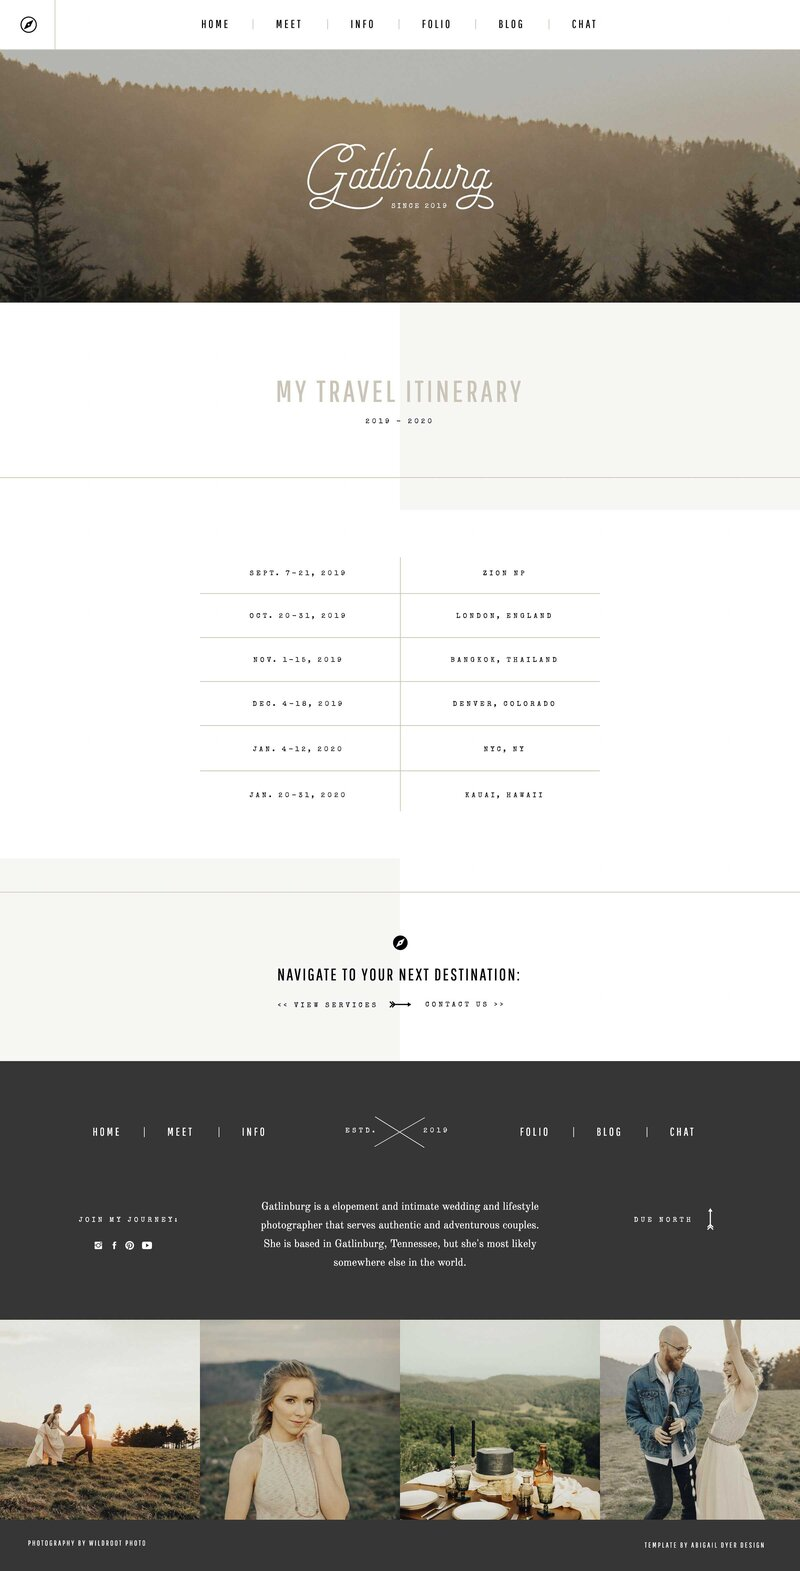 Showit-Website-Template-Gatlinburg_6